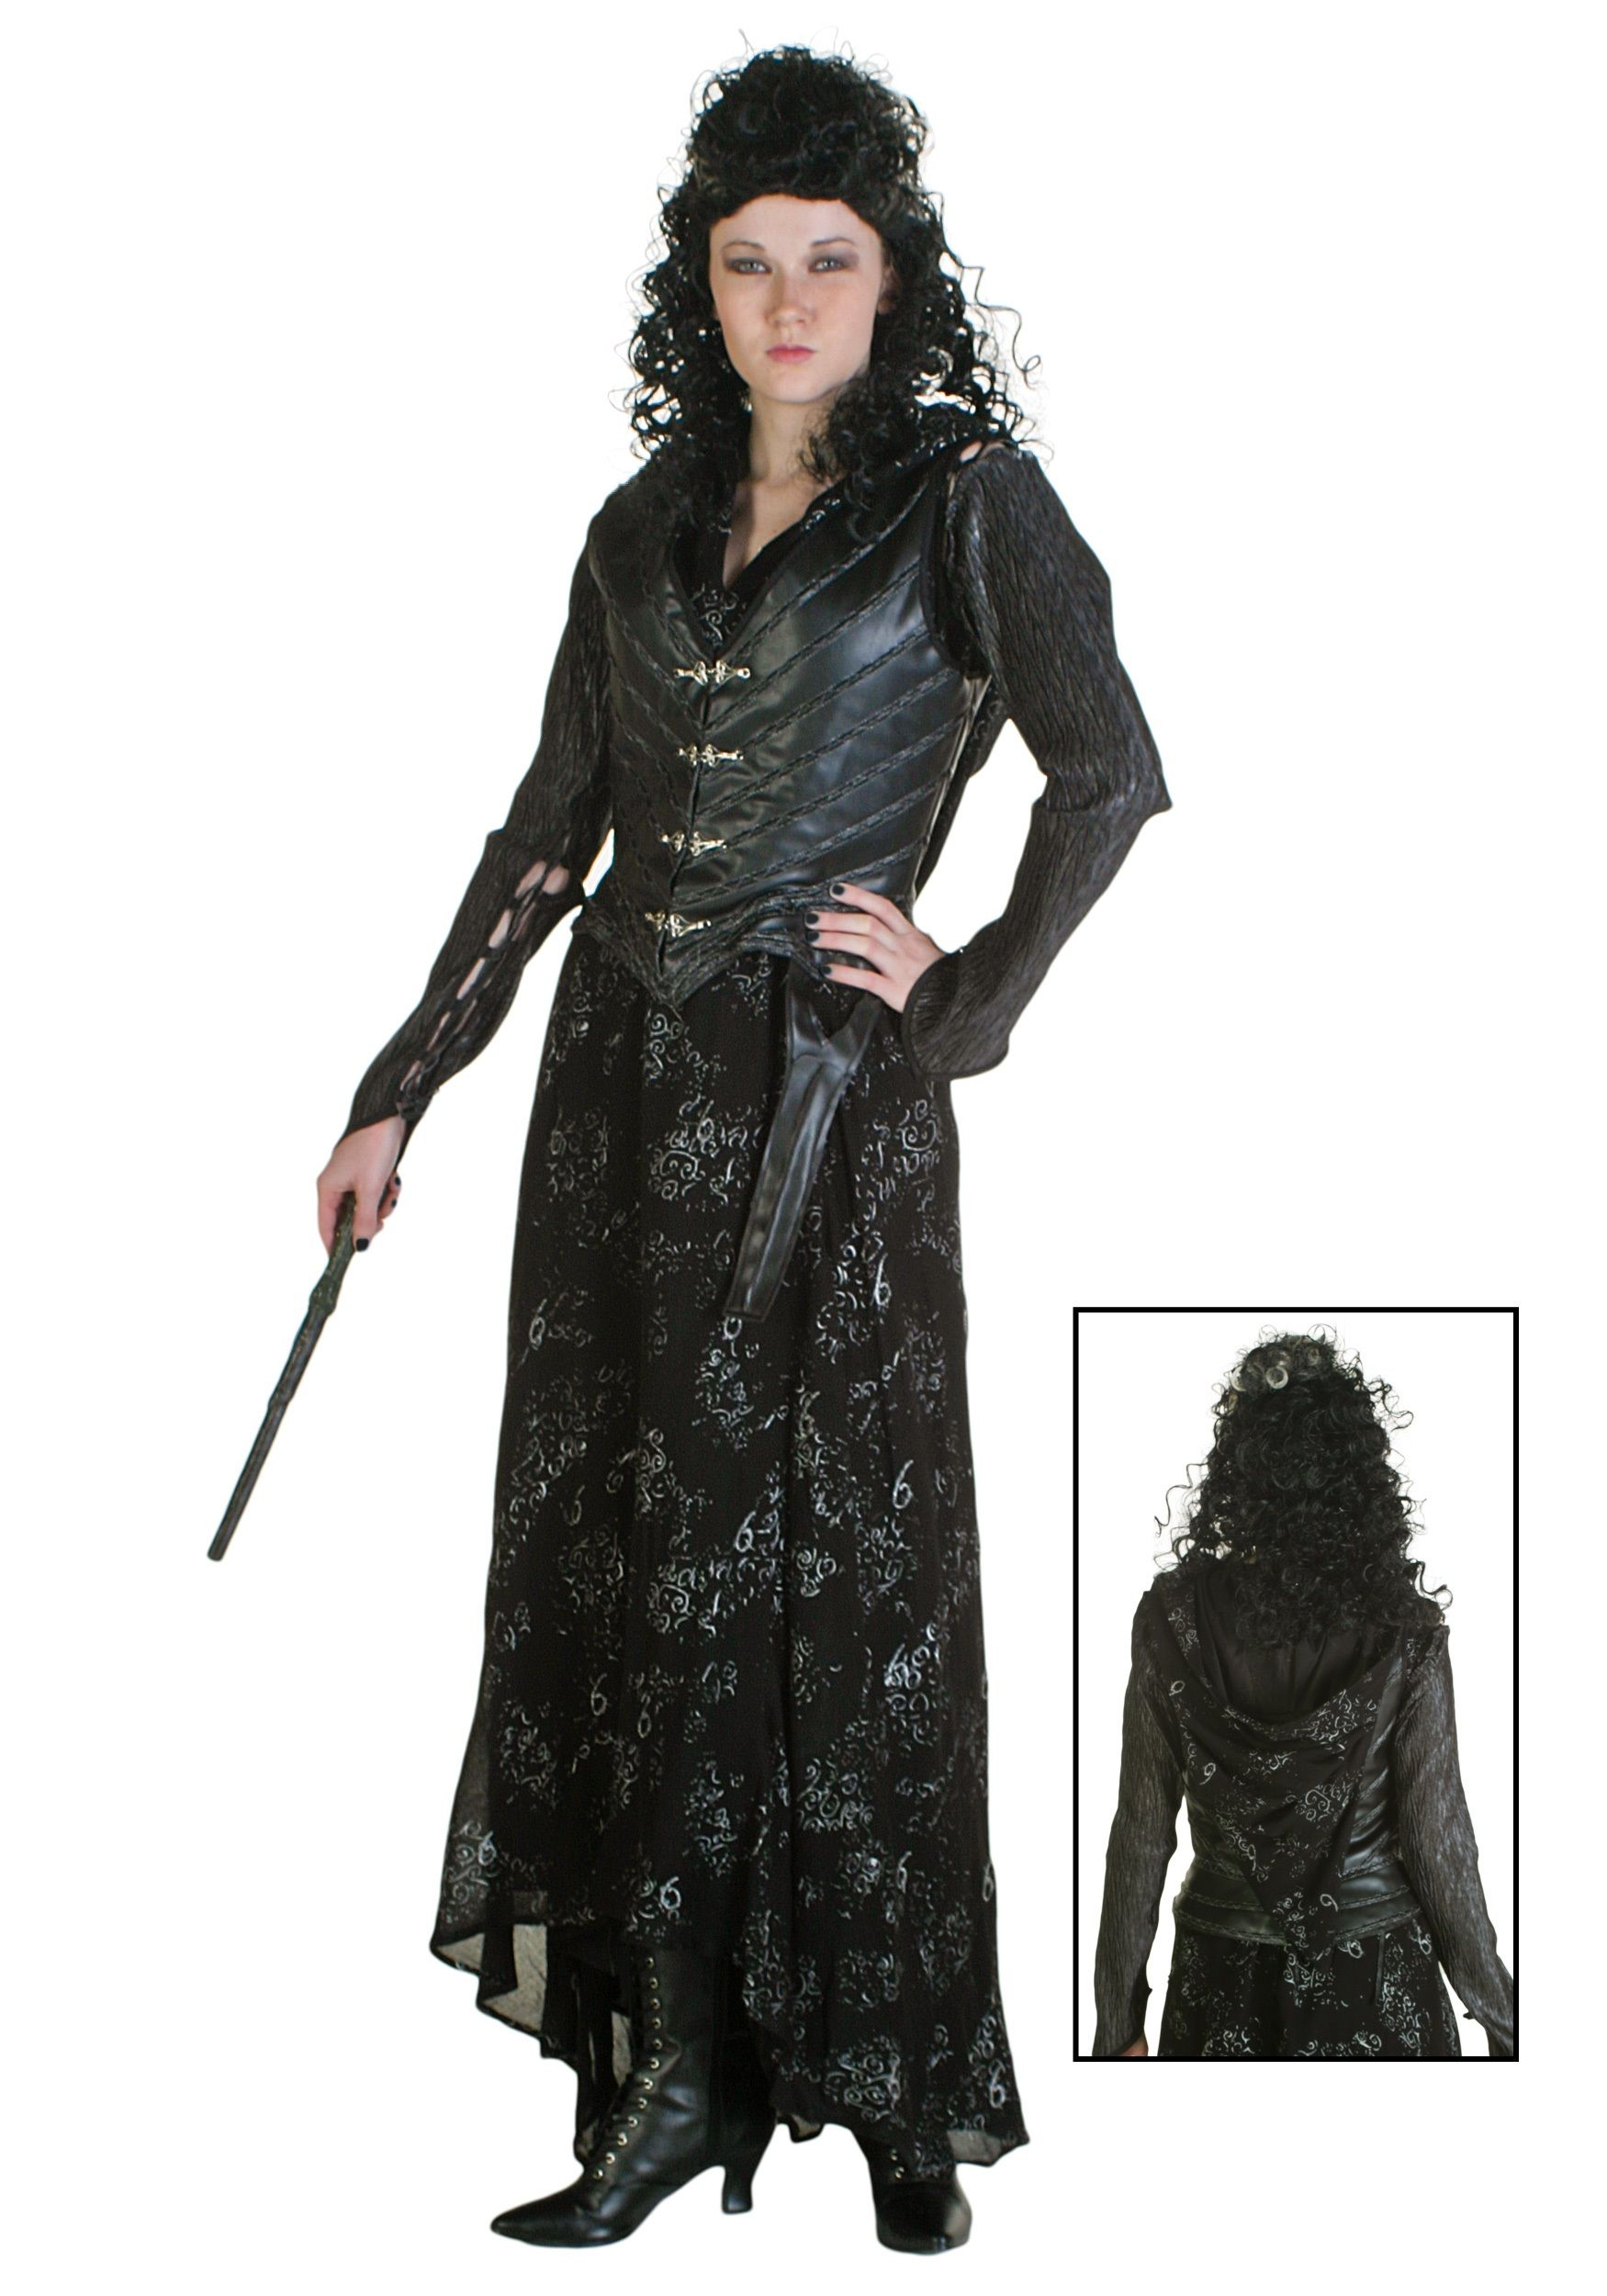 bellatrix lestrange costume replica womens harry potter. Black Bedroom Furniture Sets. Home Design Ideas